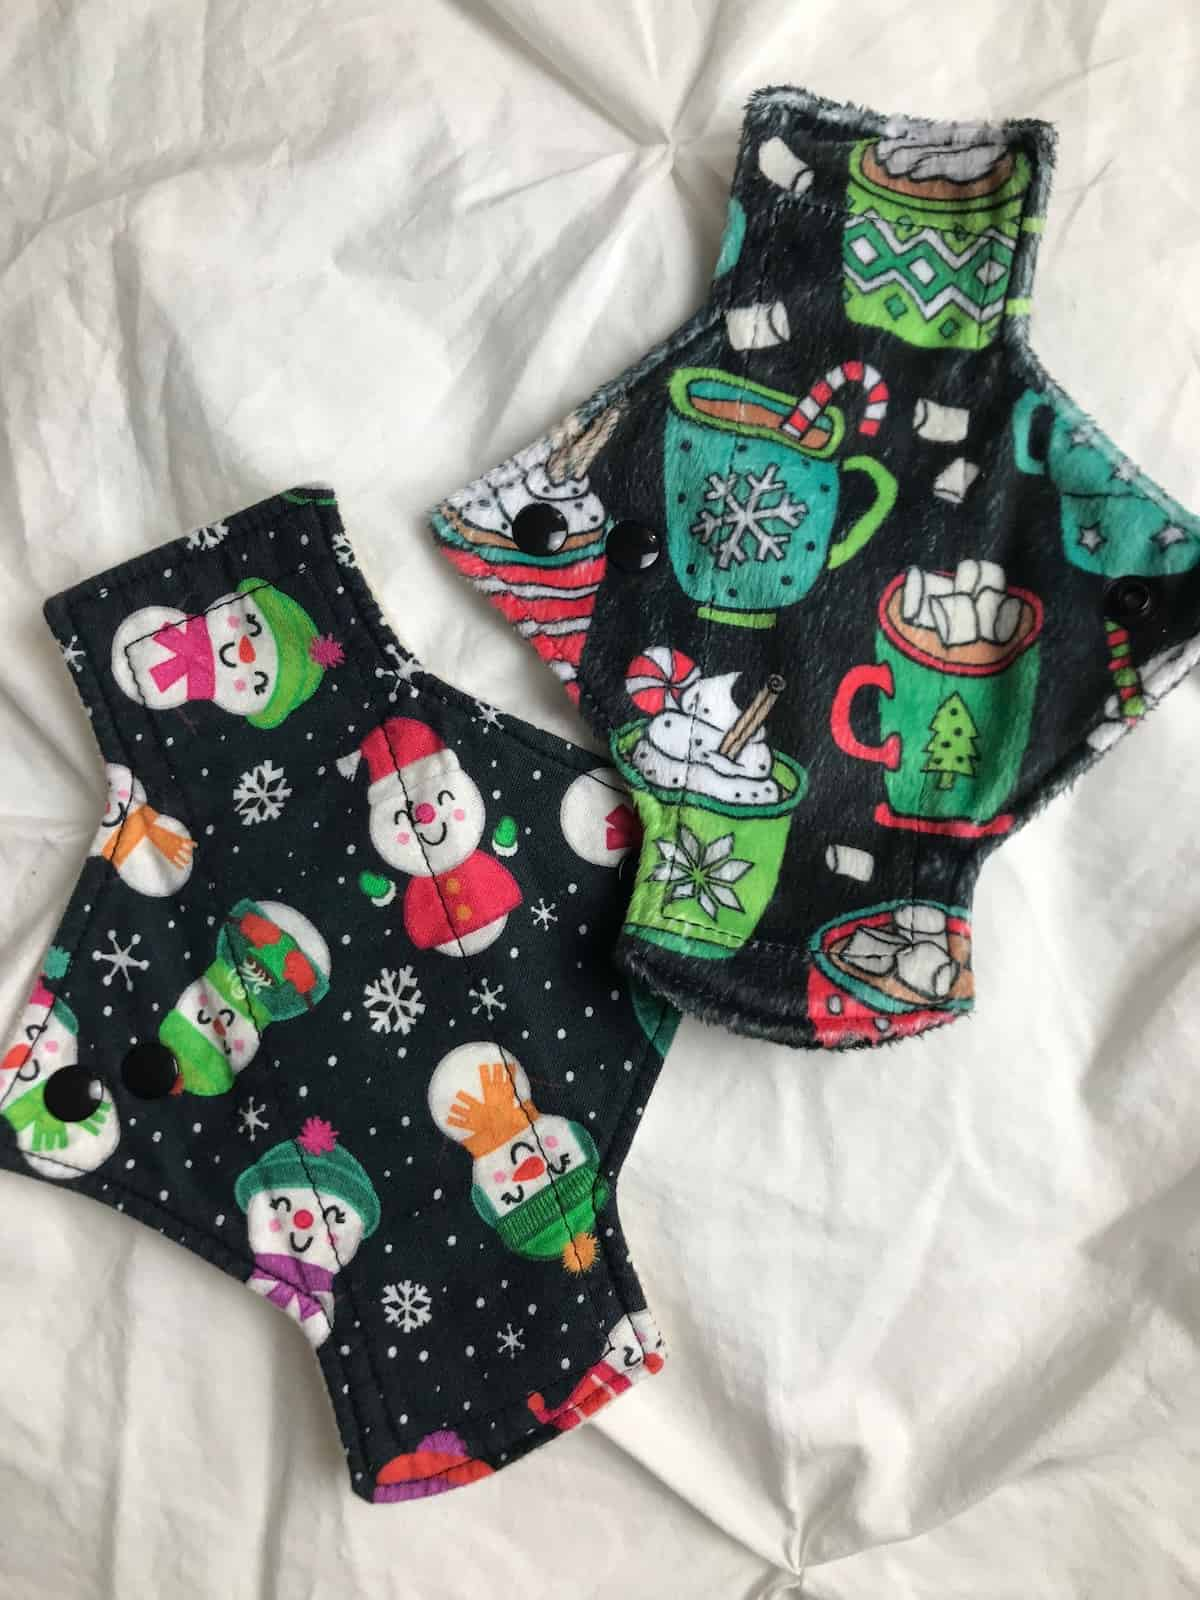 Two reusable menstrual pads with Christmas patterns on them.